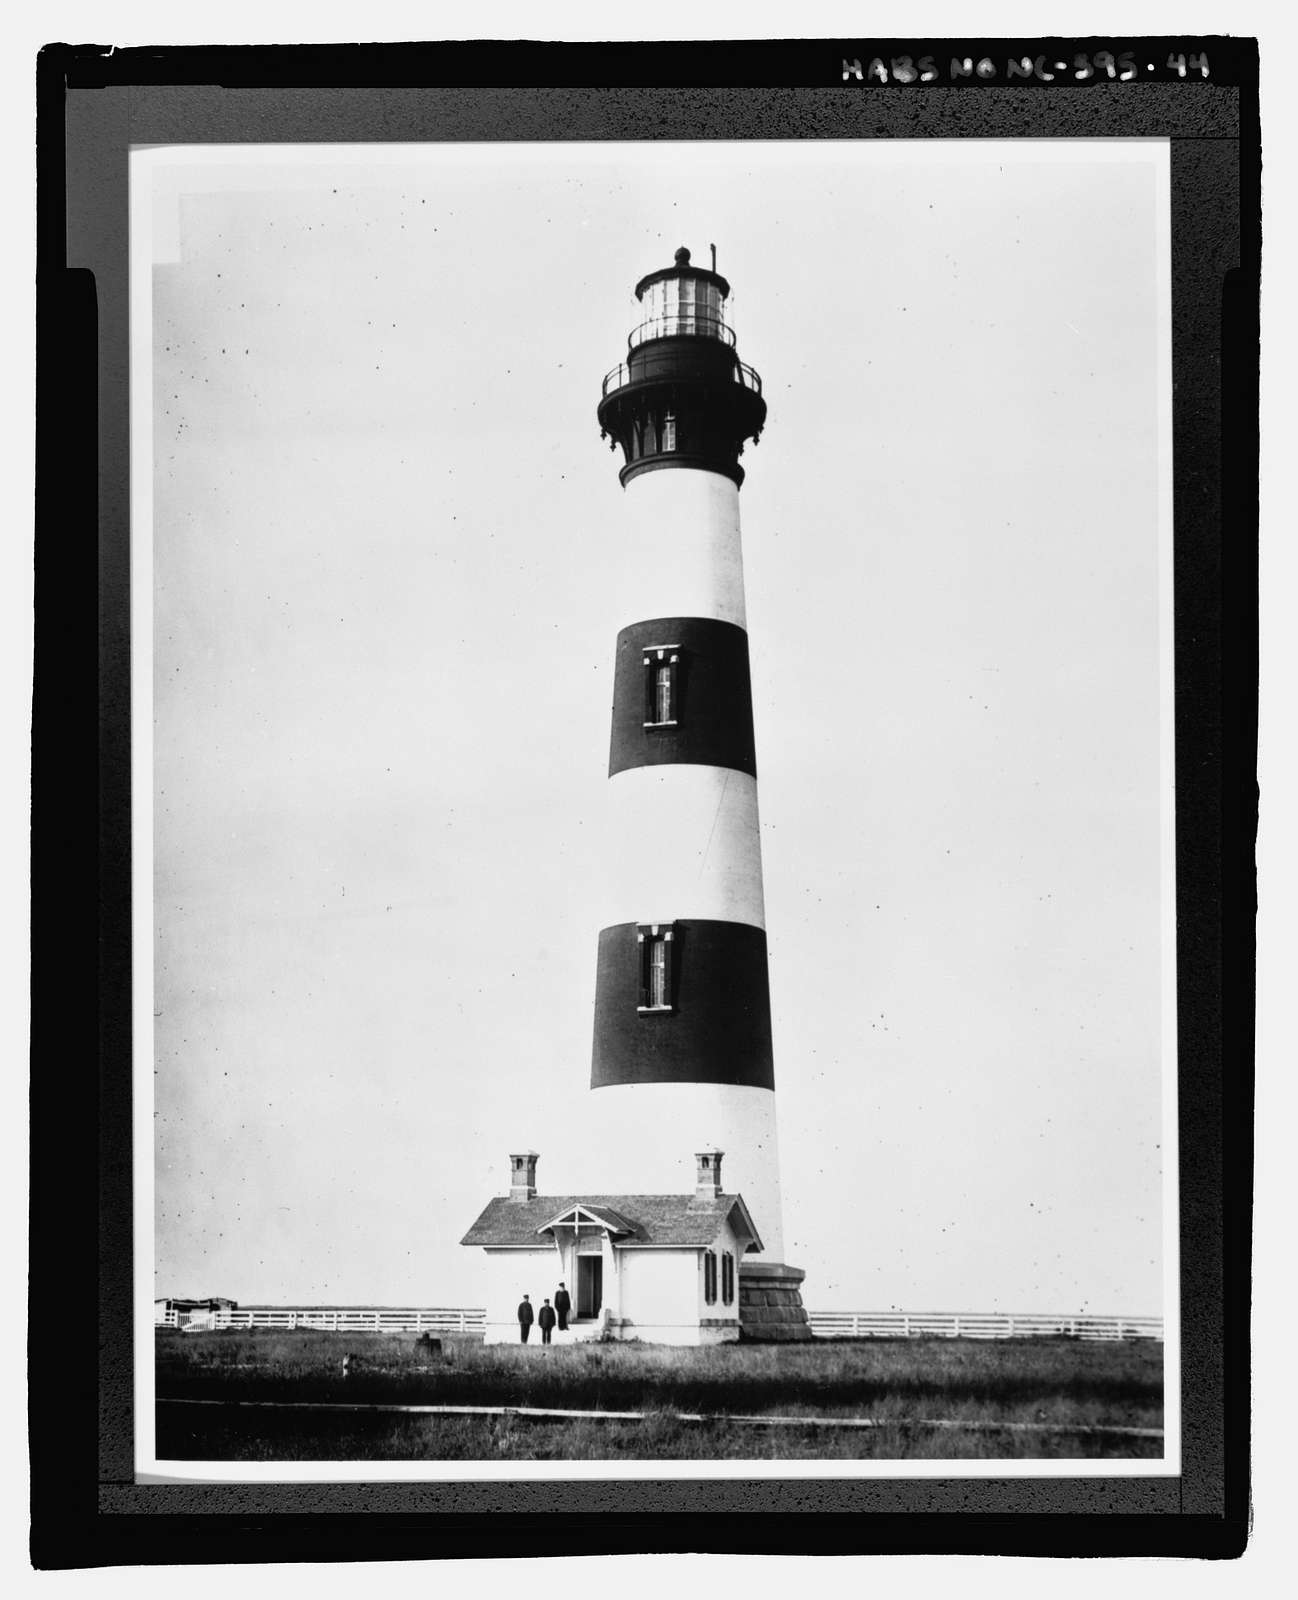 Bodie Island Light Station, Off Highway 12, Nags Head, Dare County, NC